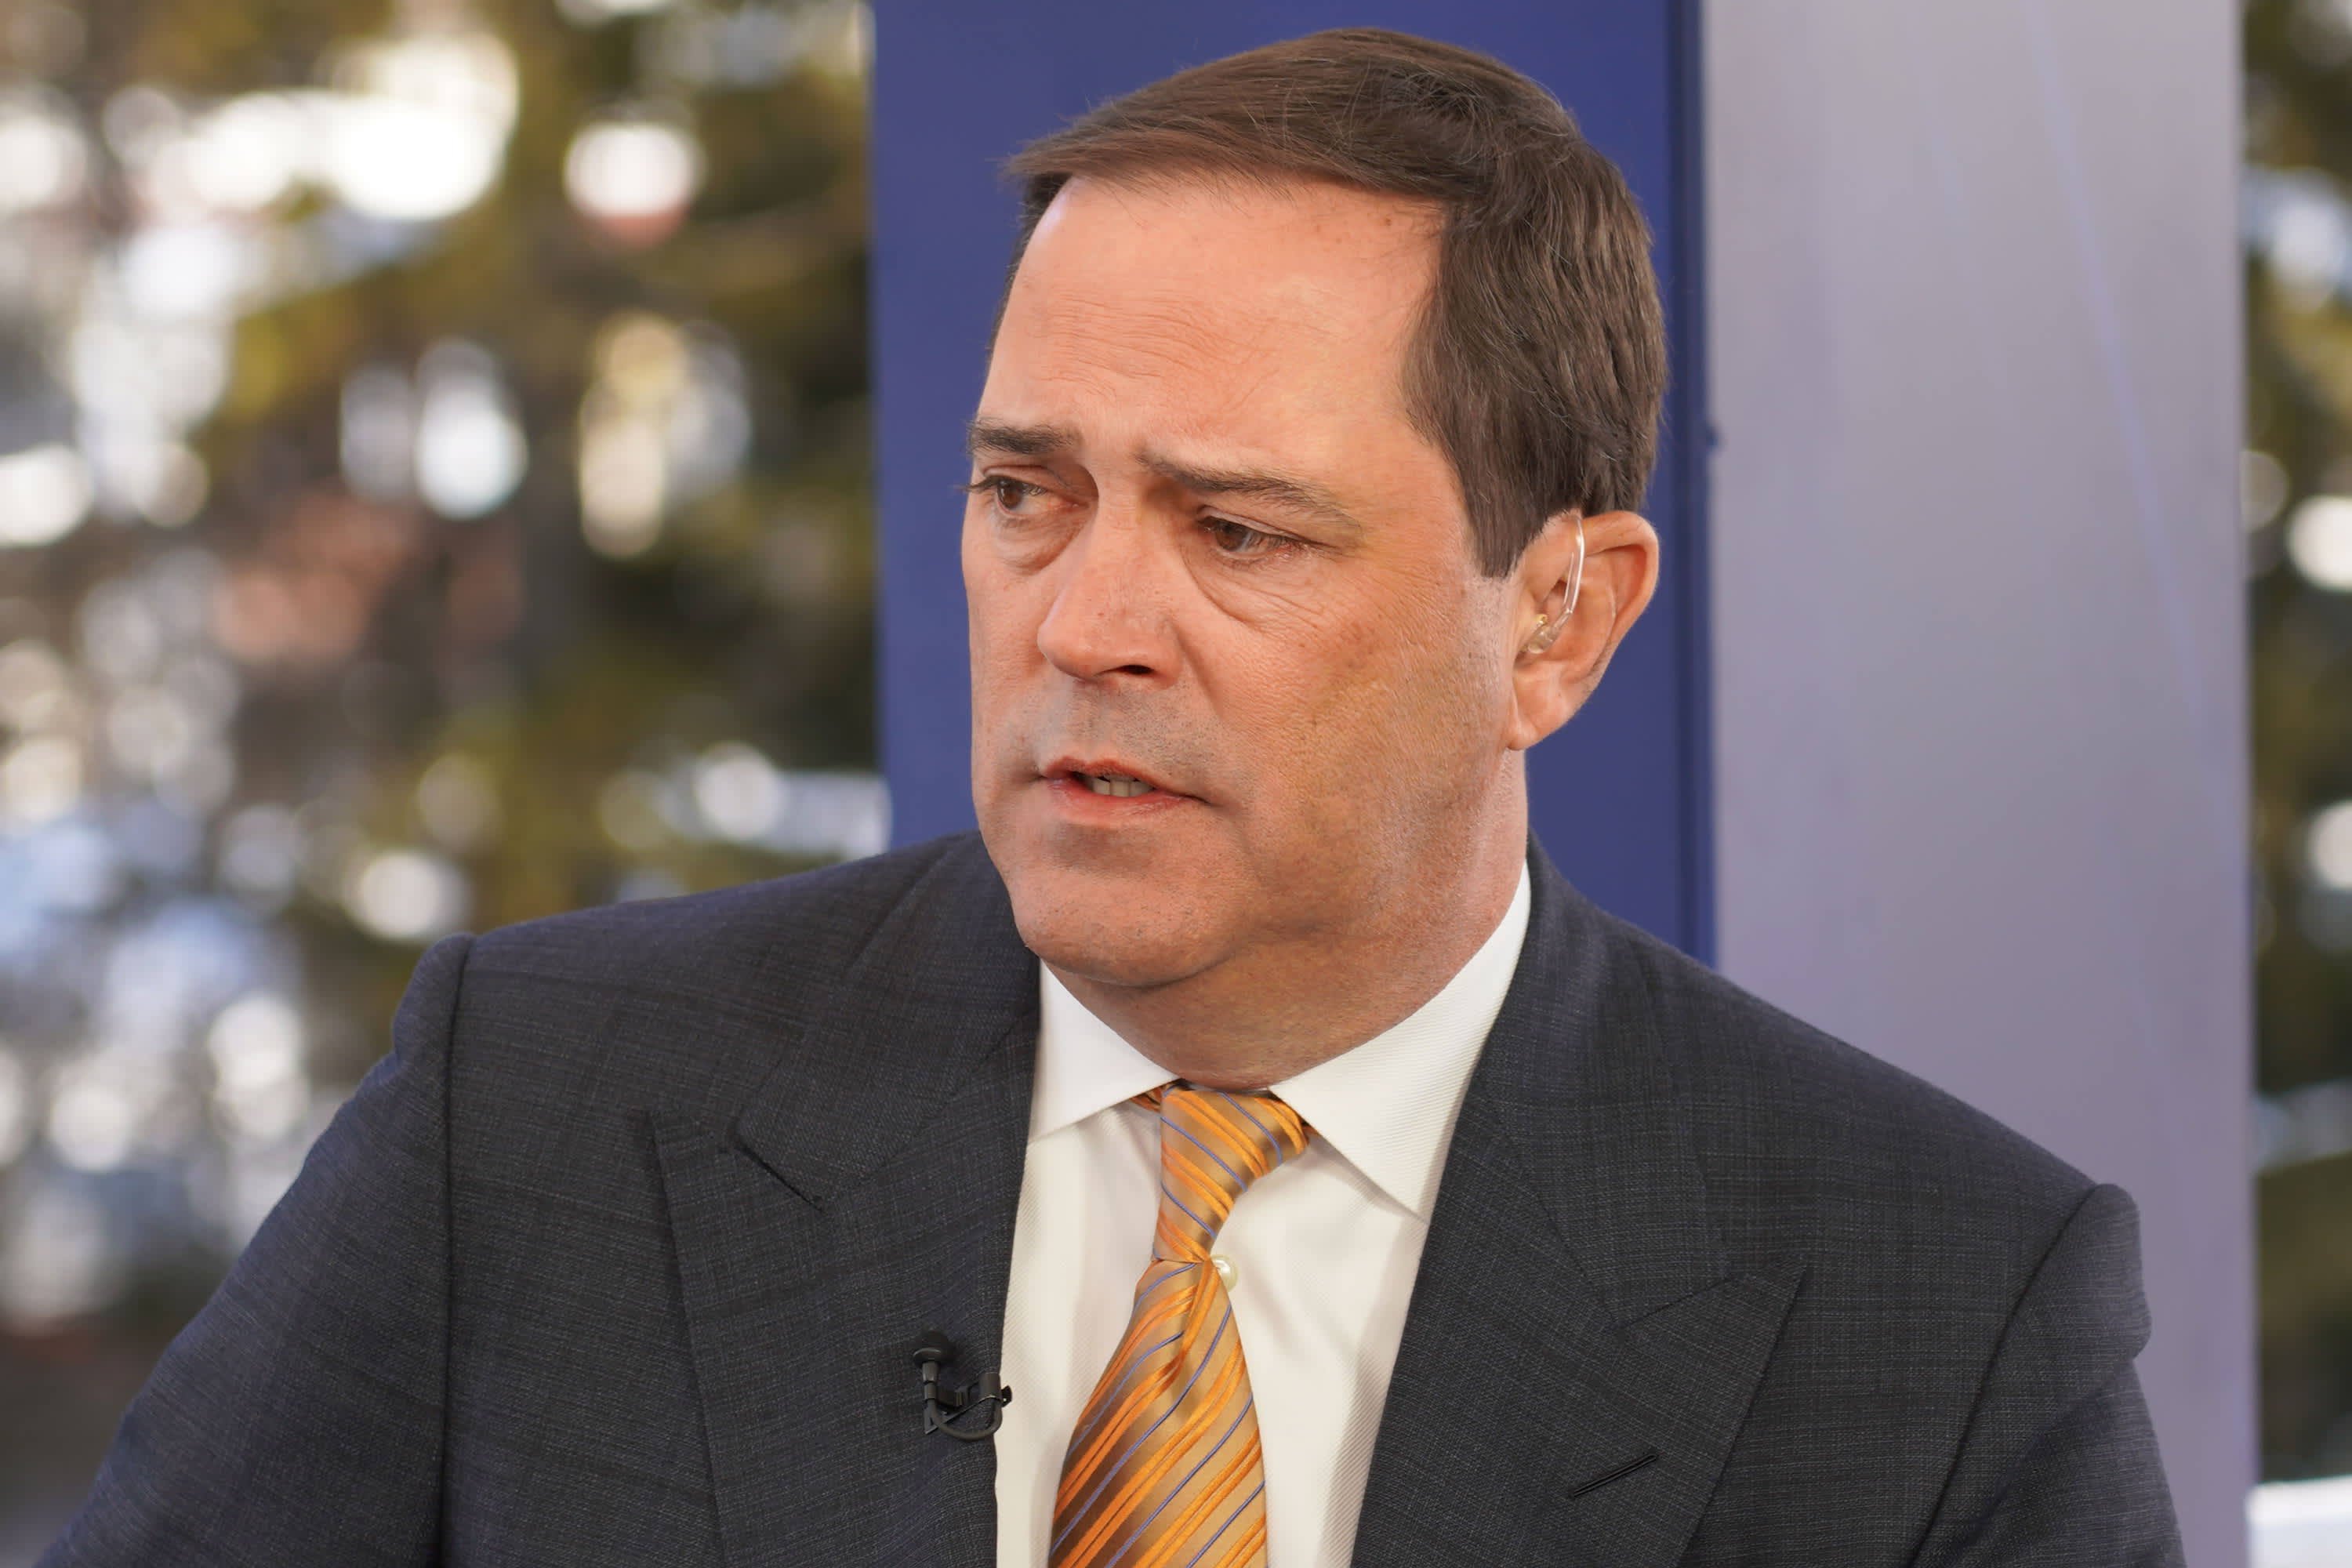 Cisco CEO: Customers spent 5.5 billion minutes in virtual meetings this month due to coronavirus